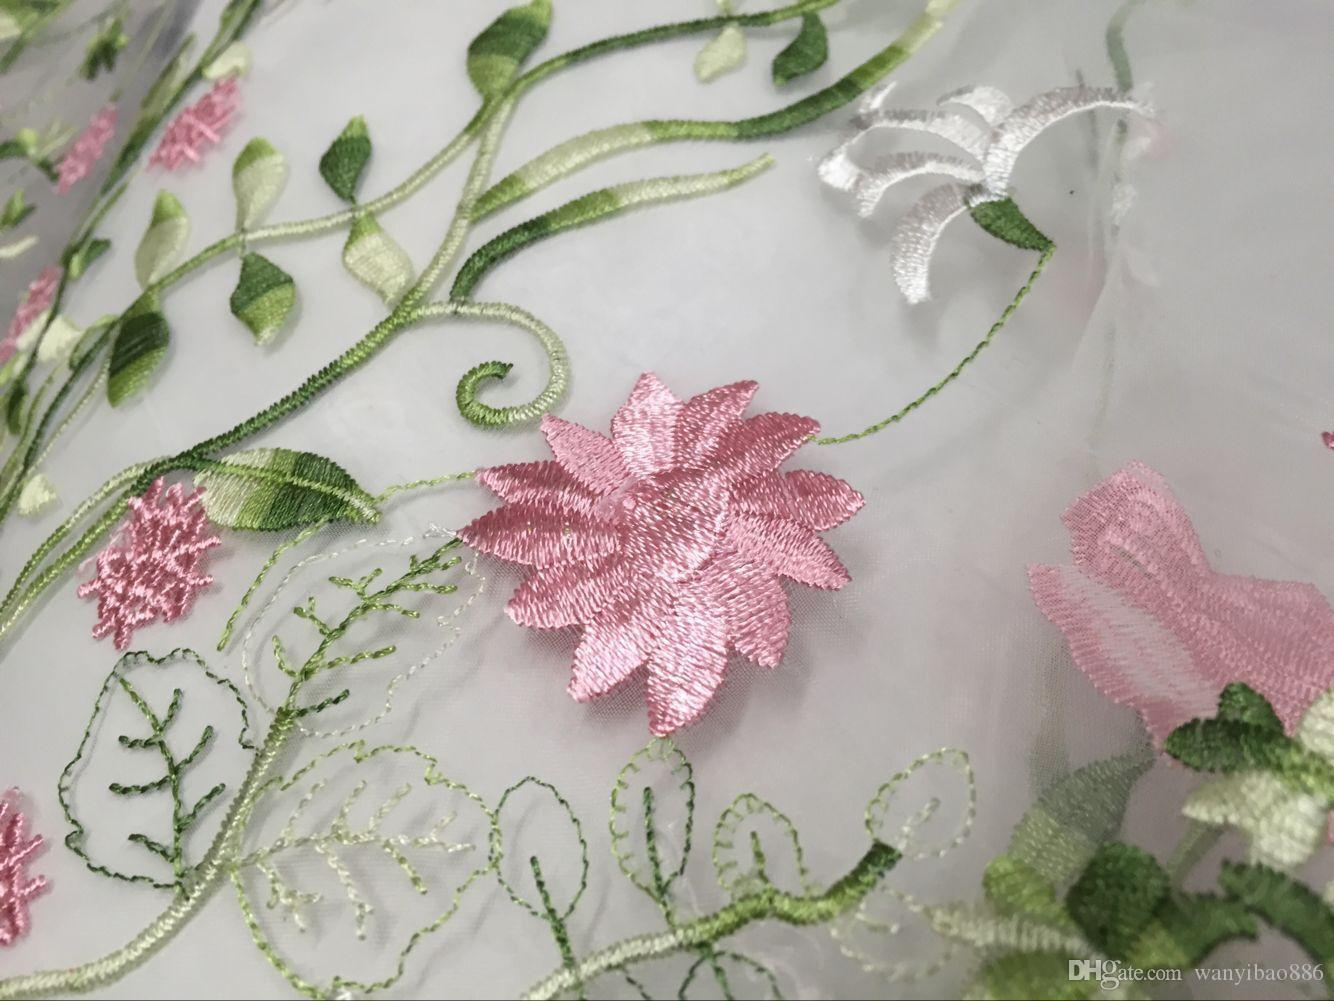 Hot Selling 5YardsWater soluble gauze bud silk fabrics Water soluble lace Organza multi-color embroidery fabrics